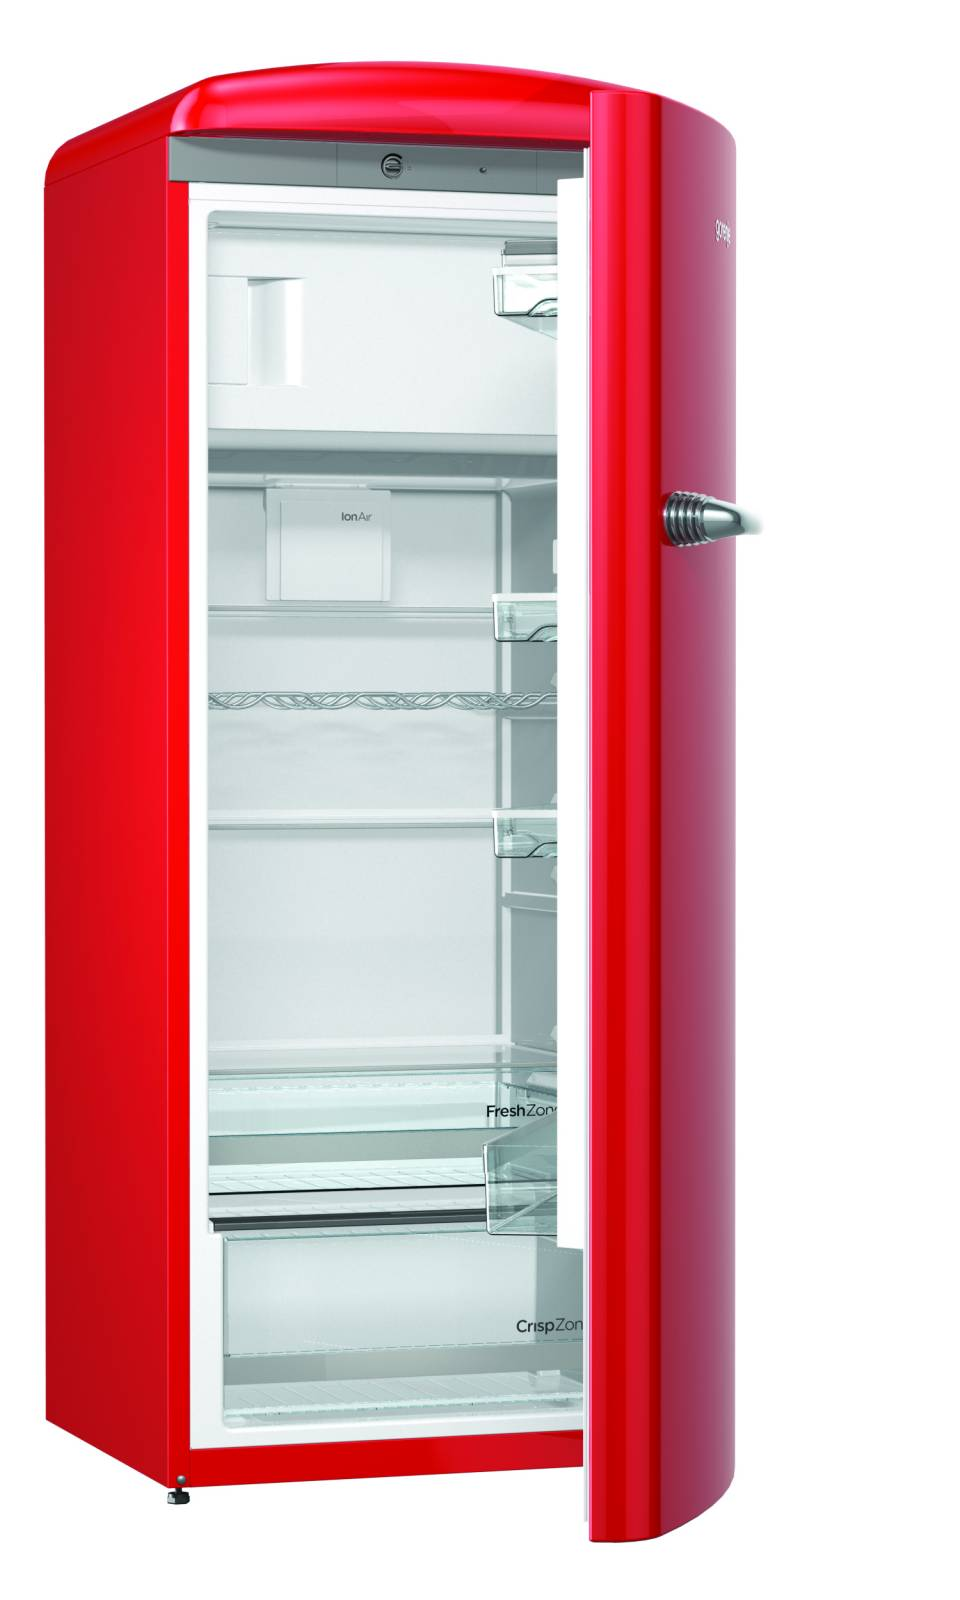 Der Gorenje Kühlschrank Retro Collection ORB153 in Rot